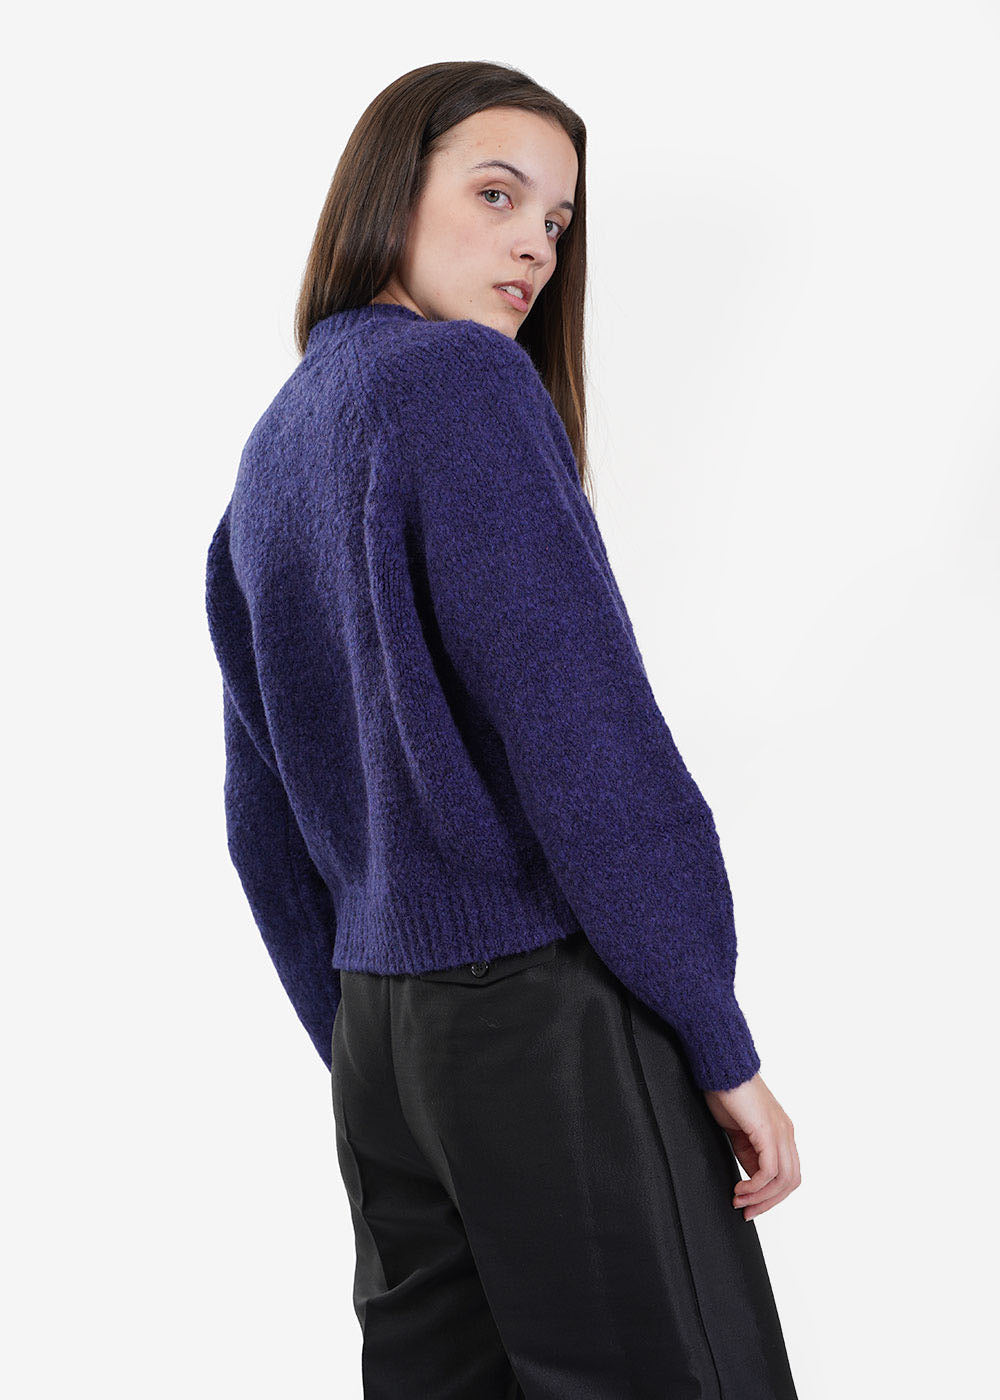 Paloma Wool Pieiro sweater — Shop sustainable fashion and slow fashion at New Classics Studios